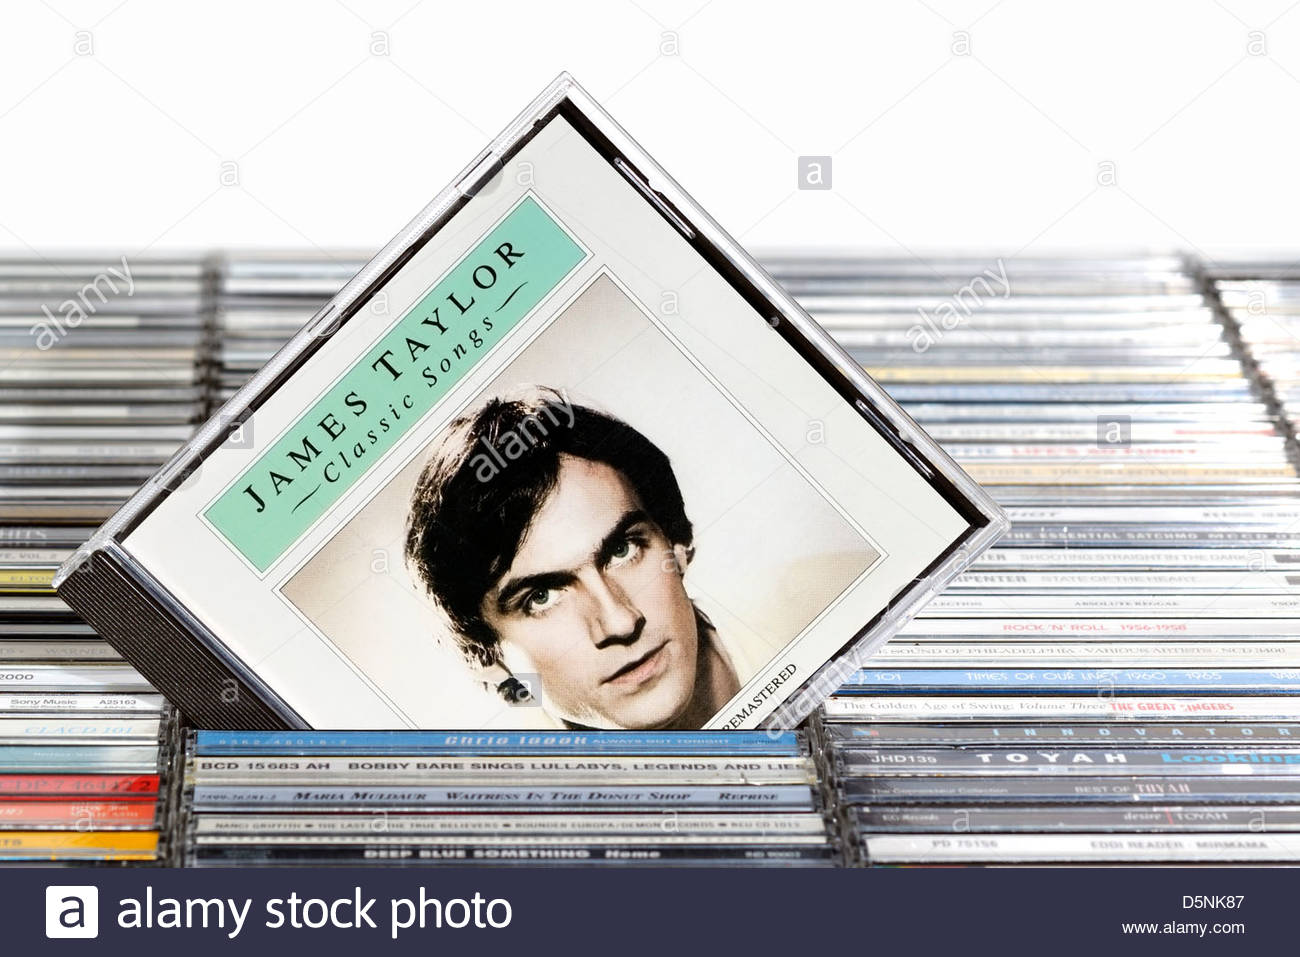 James Taylor Stock Photos & James Taylor Stock Images - Page